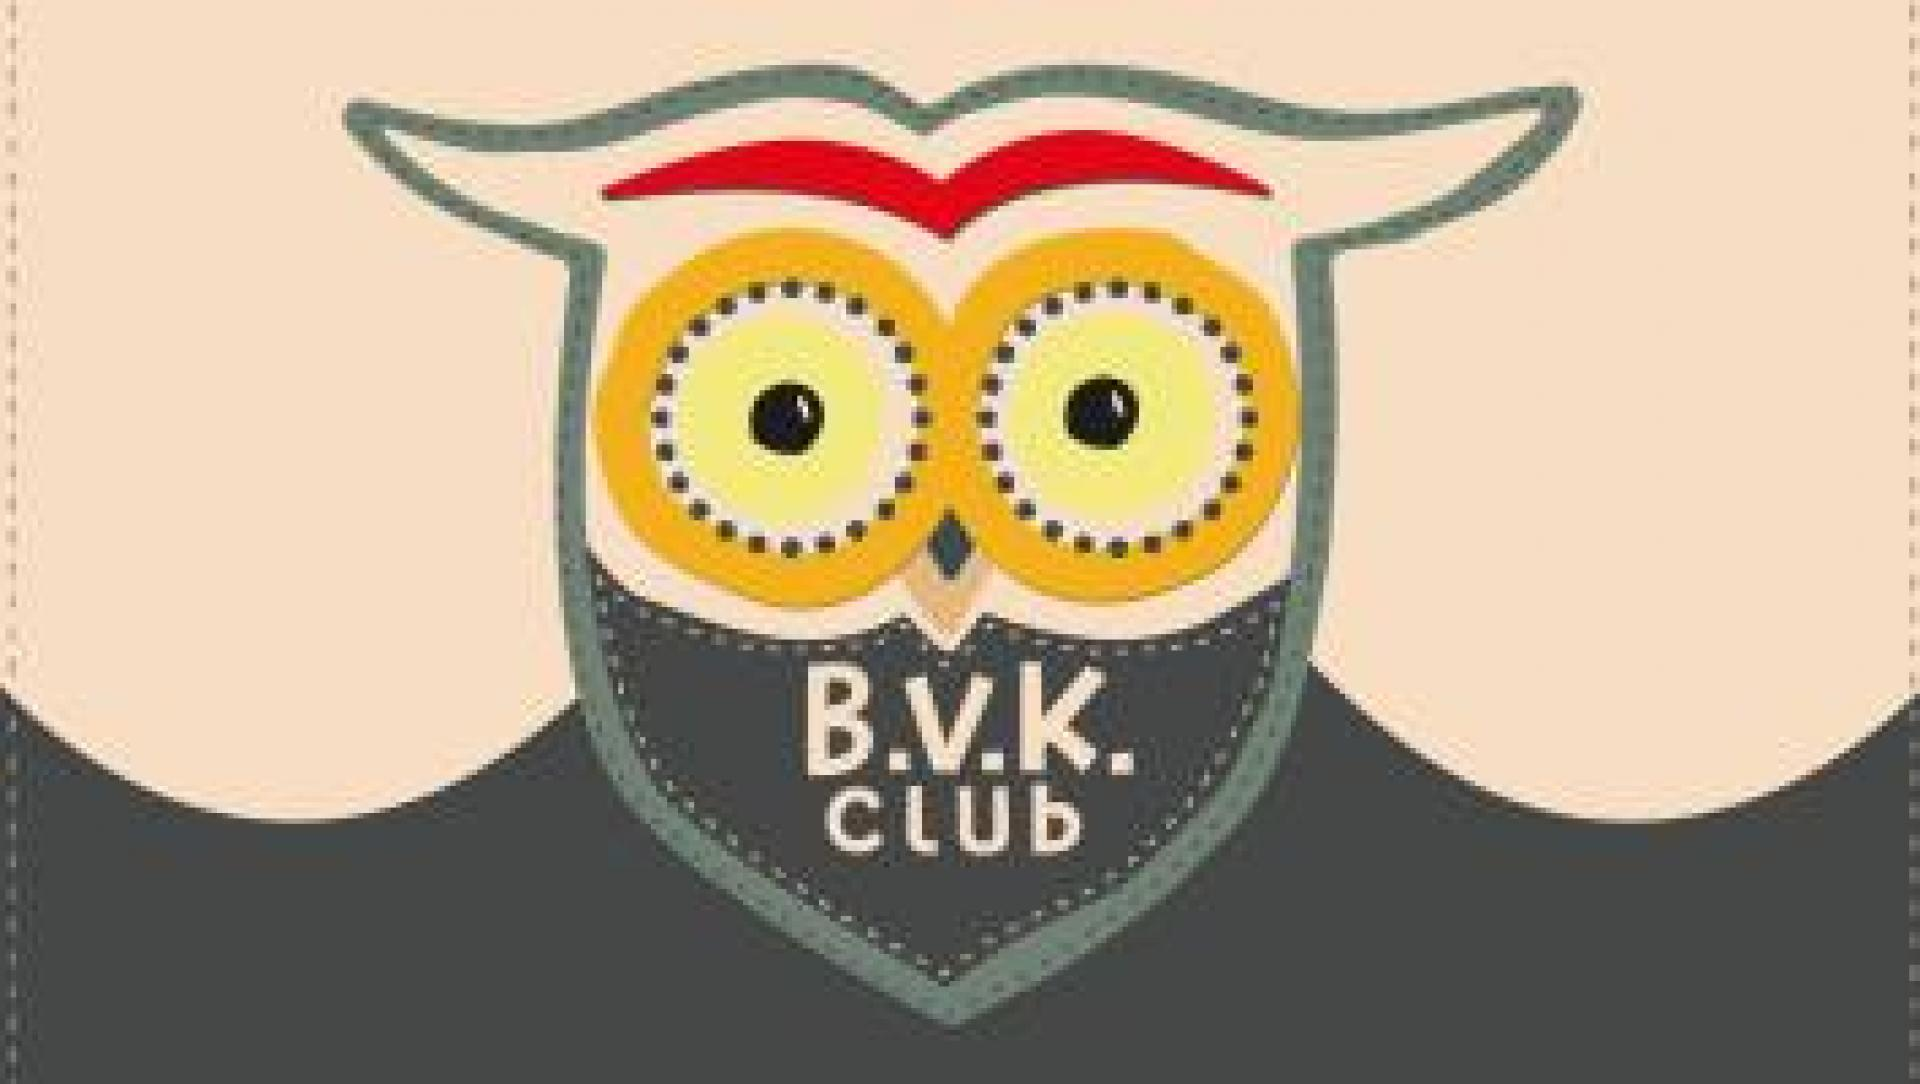 BVK-Club in Archeon